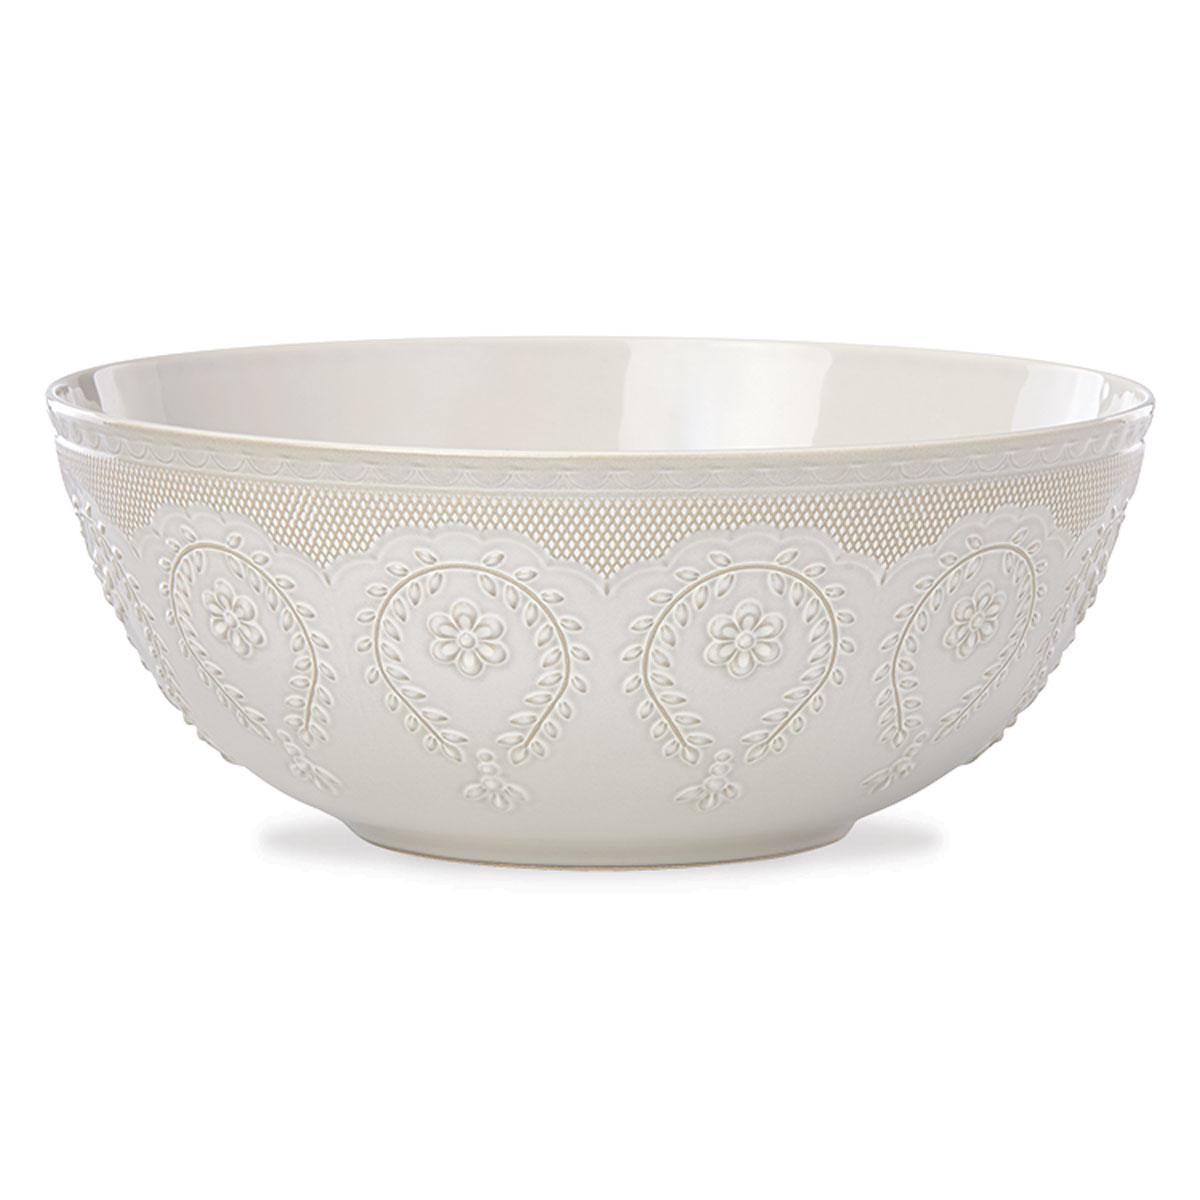 Lenox Chelse Muse Dinnerware Grey Serving Bowl